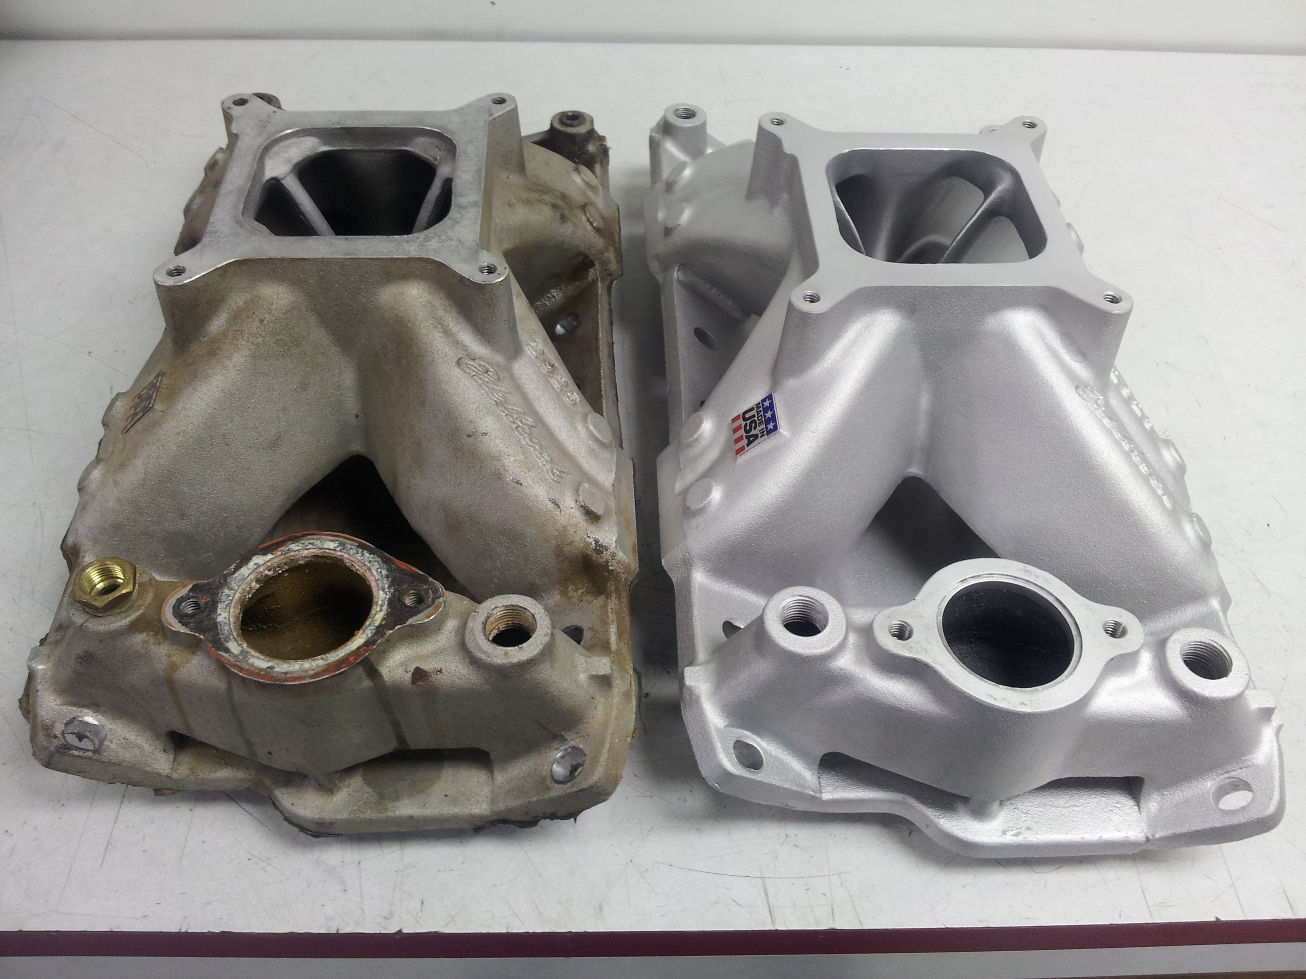 Intake before and after cleaning. Both were used on engines.